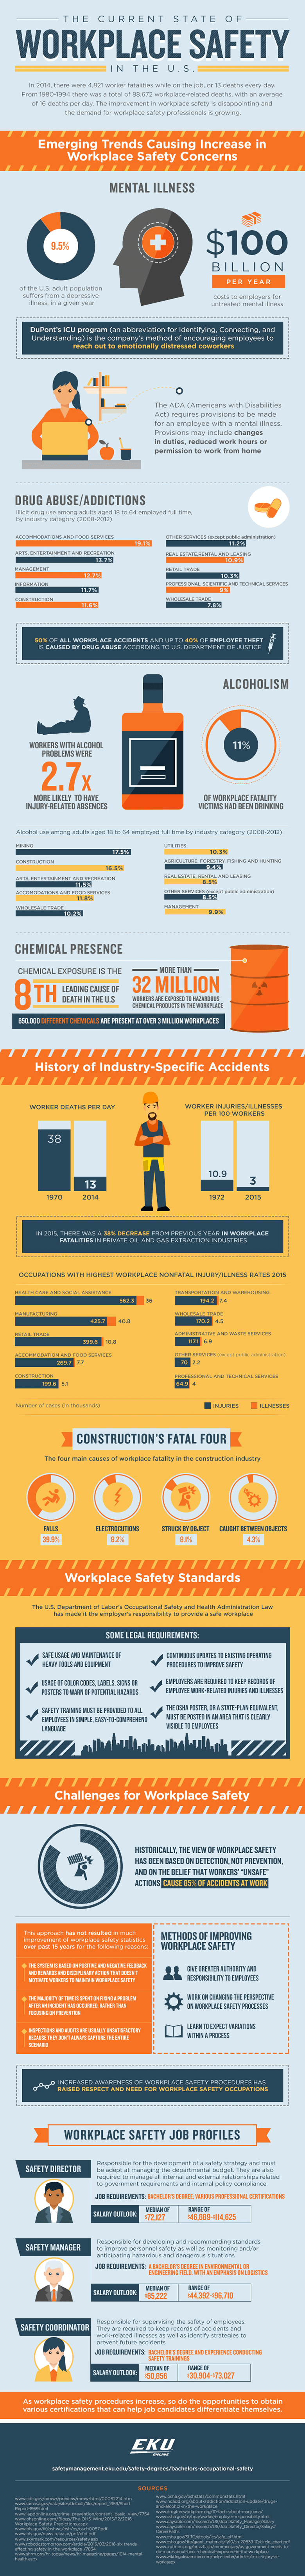 Infographic on the Current State of Workplace Safety in the U.S.